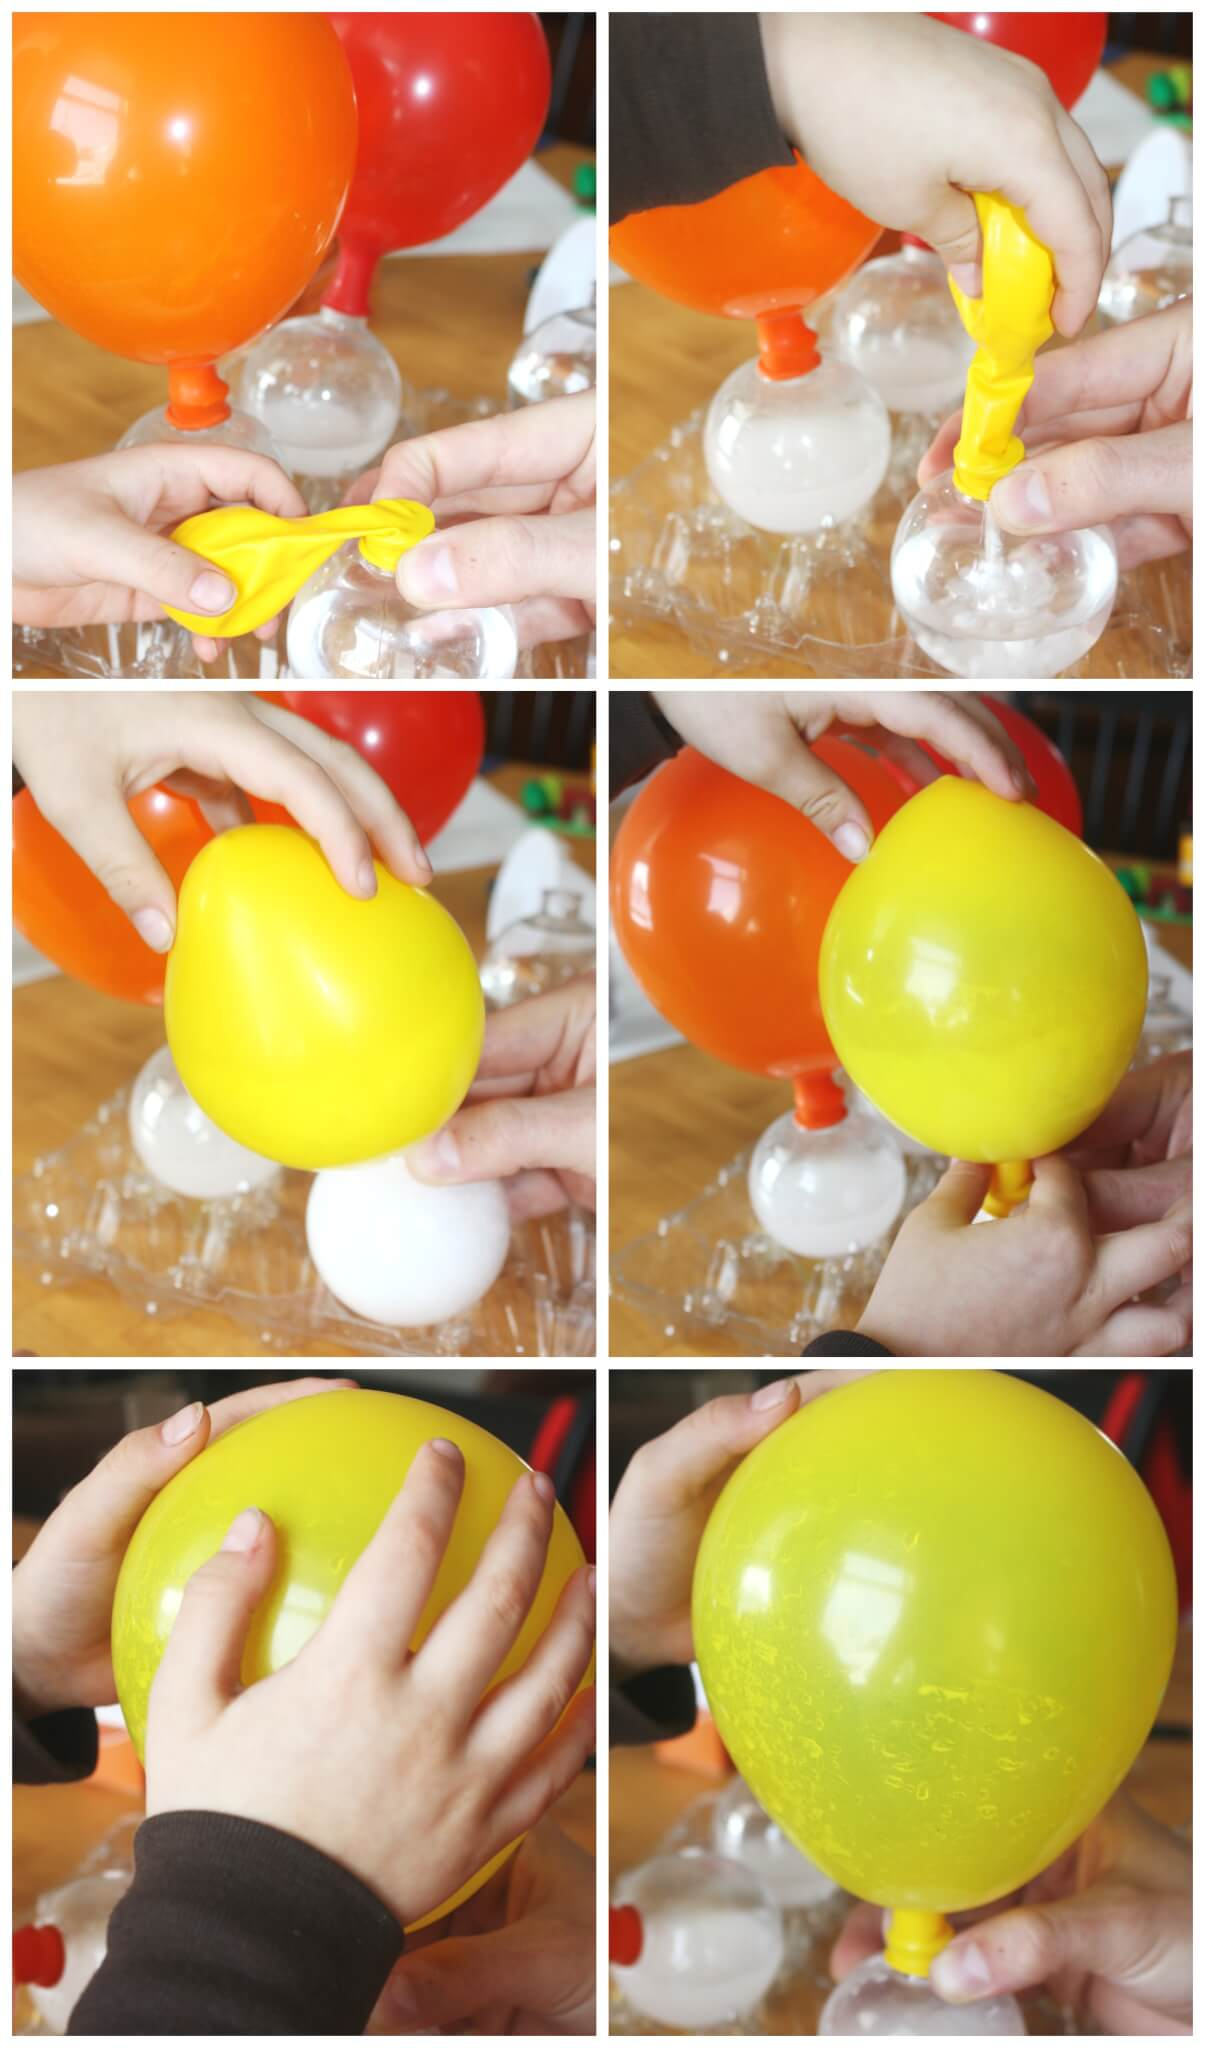 Balloon Baking Soda Vinegar Experiment Kids on Simple Science Fair Projects For 5th Graders